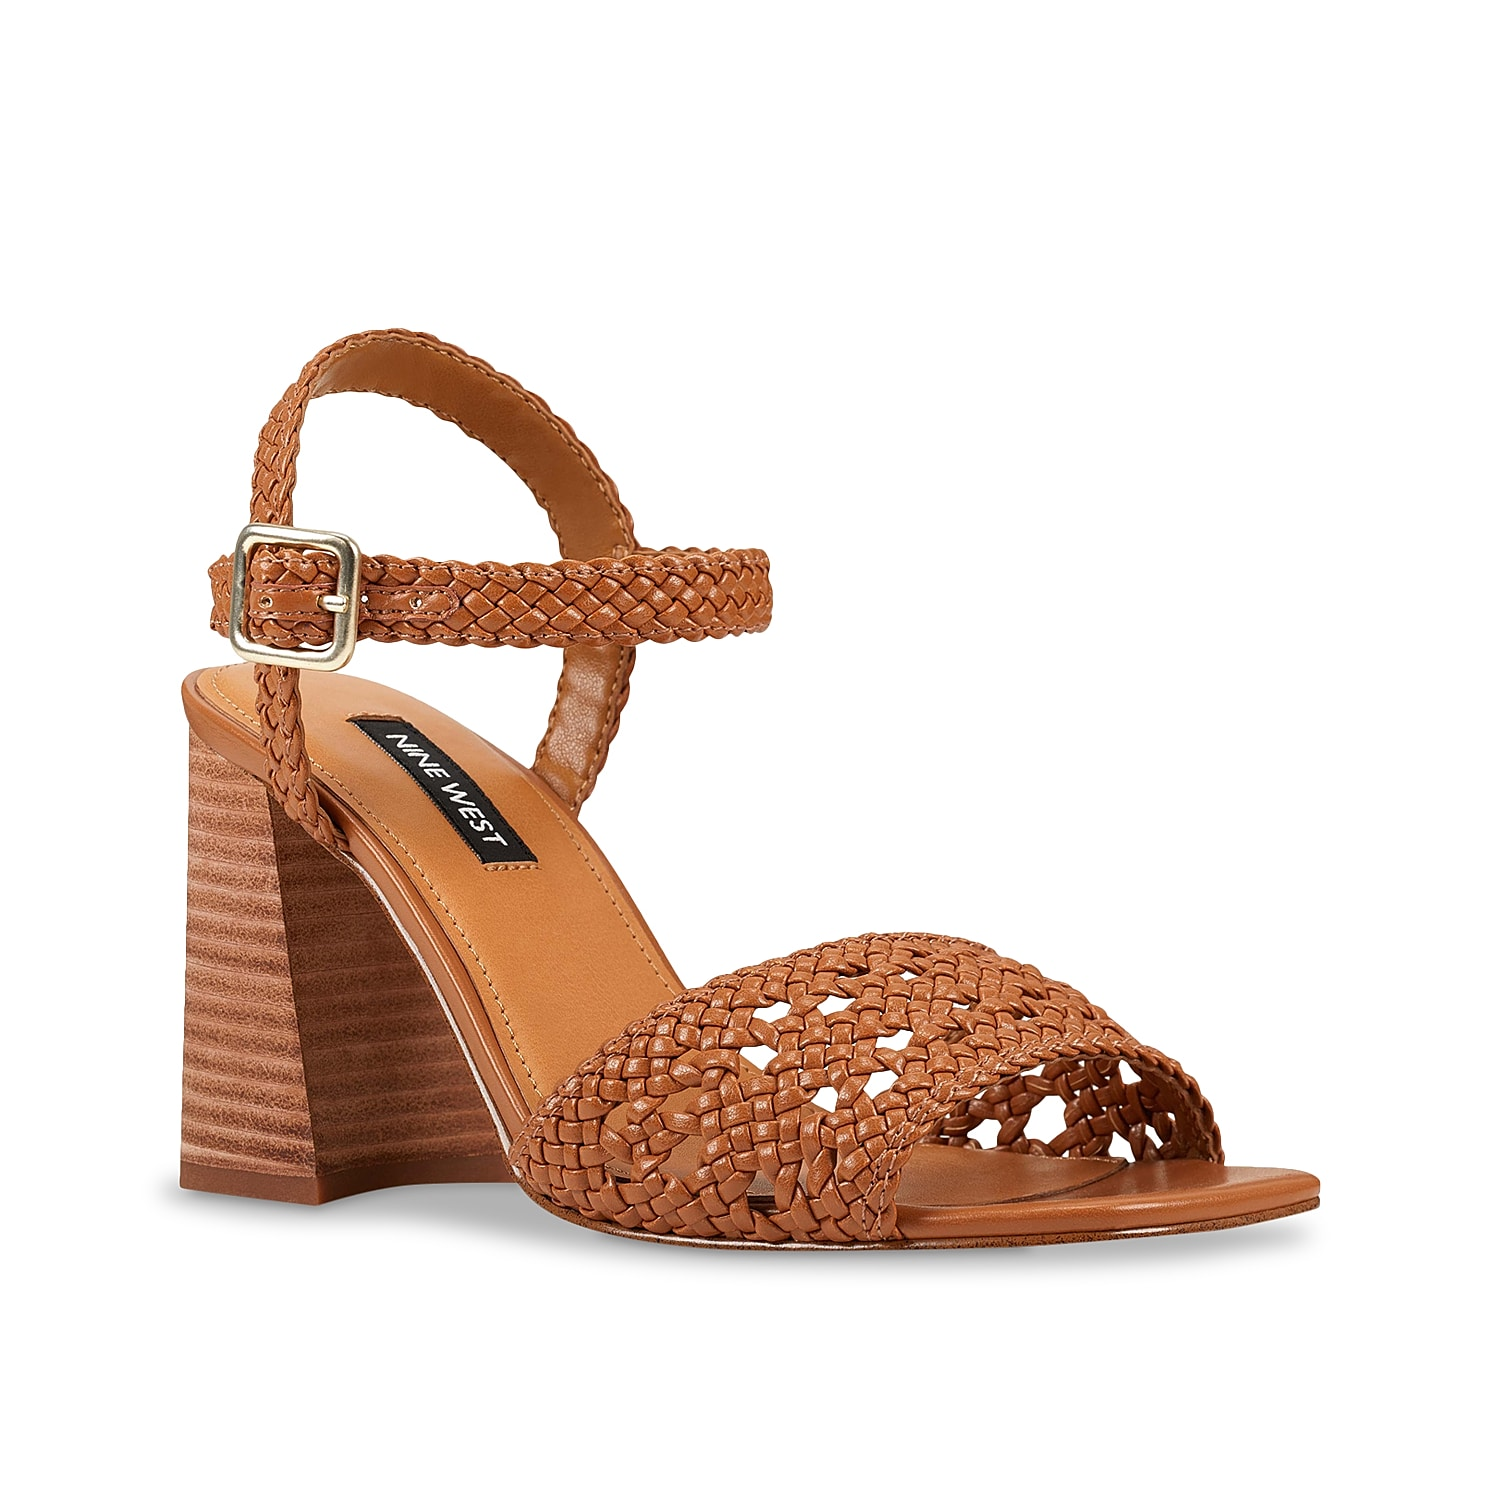 Infuse whimsical style to your wardrobe with the Gwenny sandal from Nine West. An attractive woven upper is elevated by a flared block heel adds a breezy touch to your look.